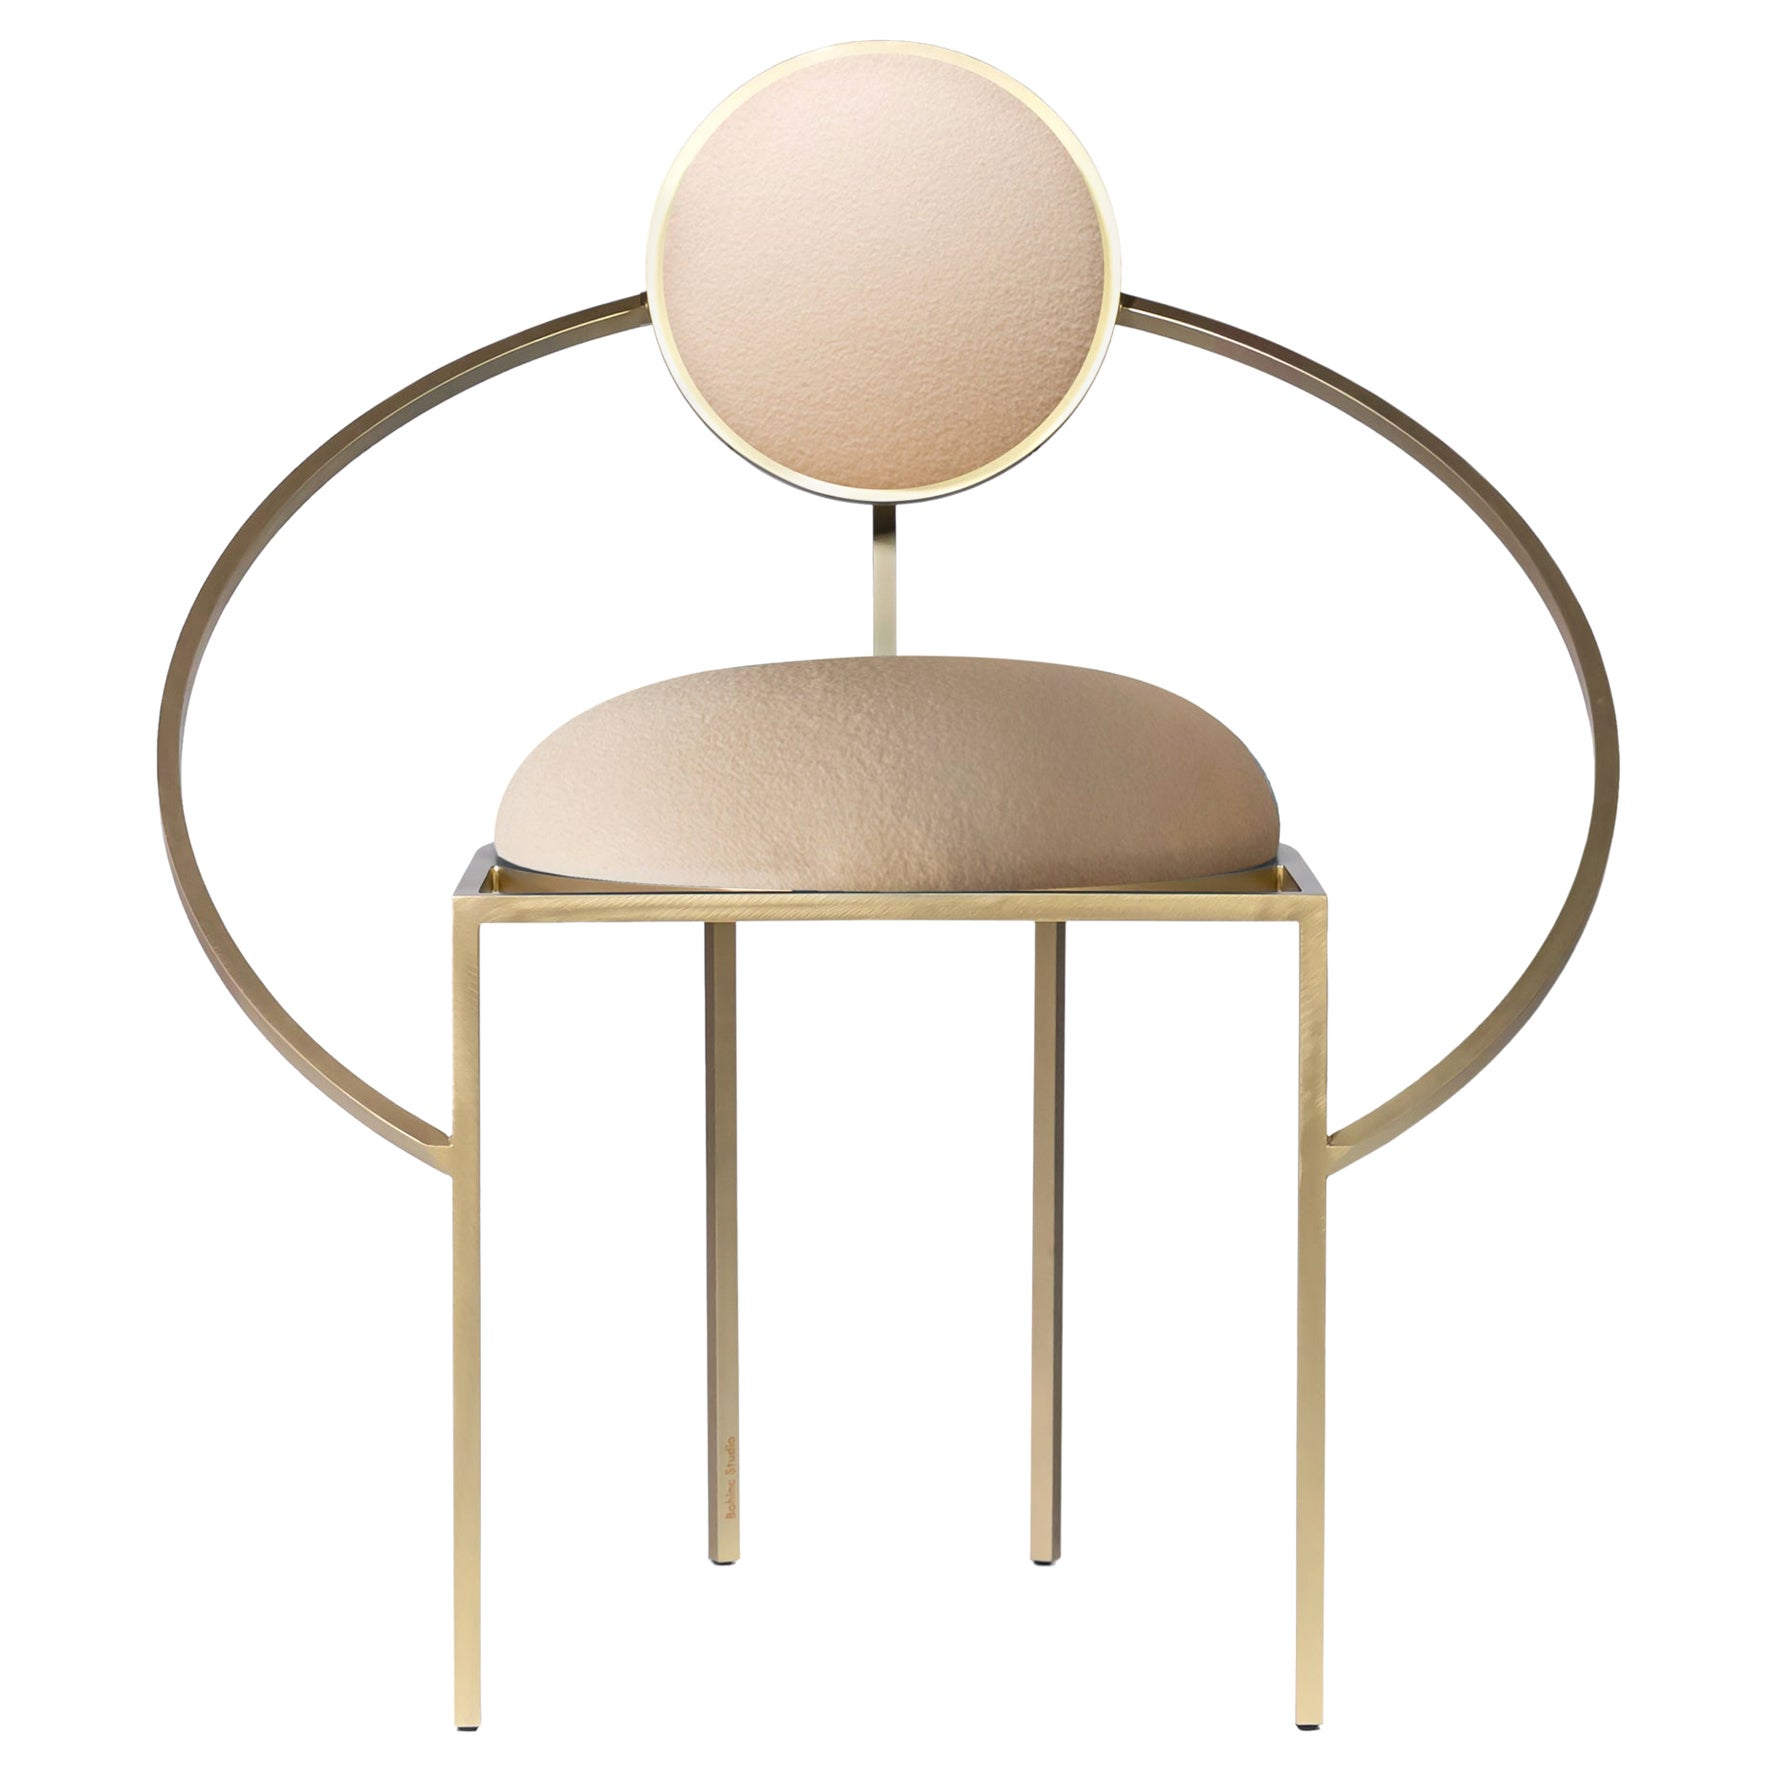 Lara Bohinc, Orbit Chair, Brushed Brass and Cream Wool Fabric